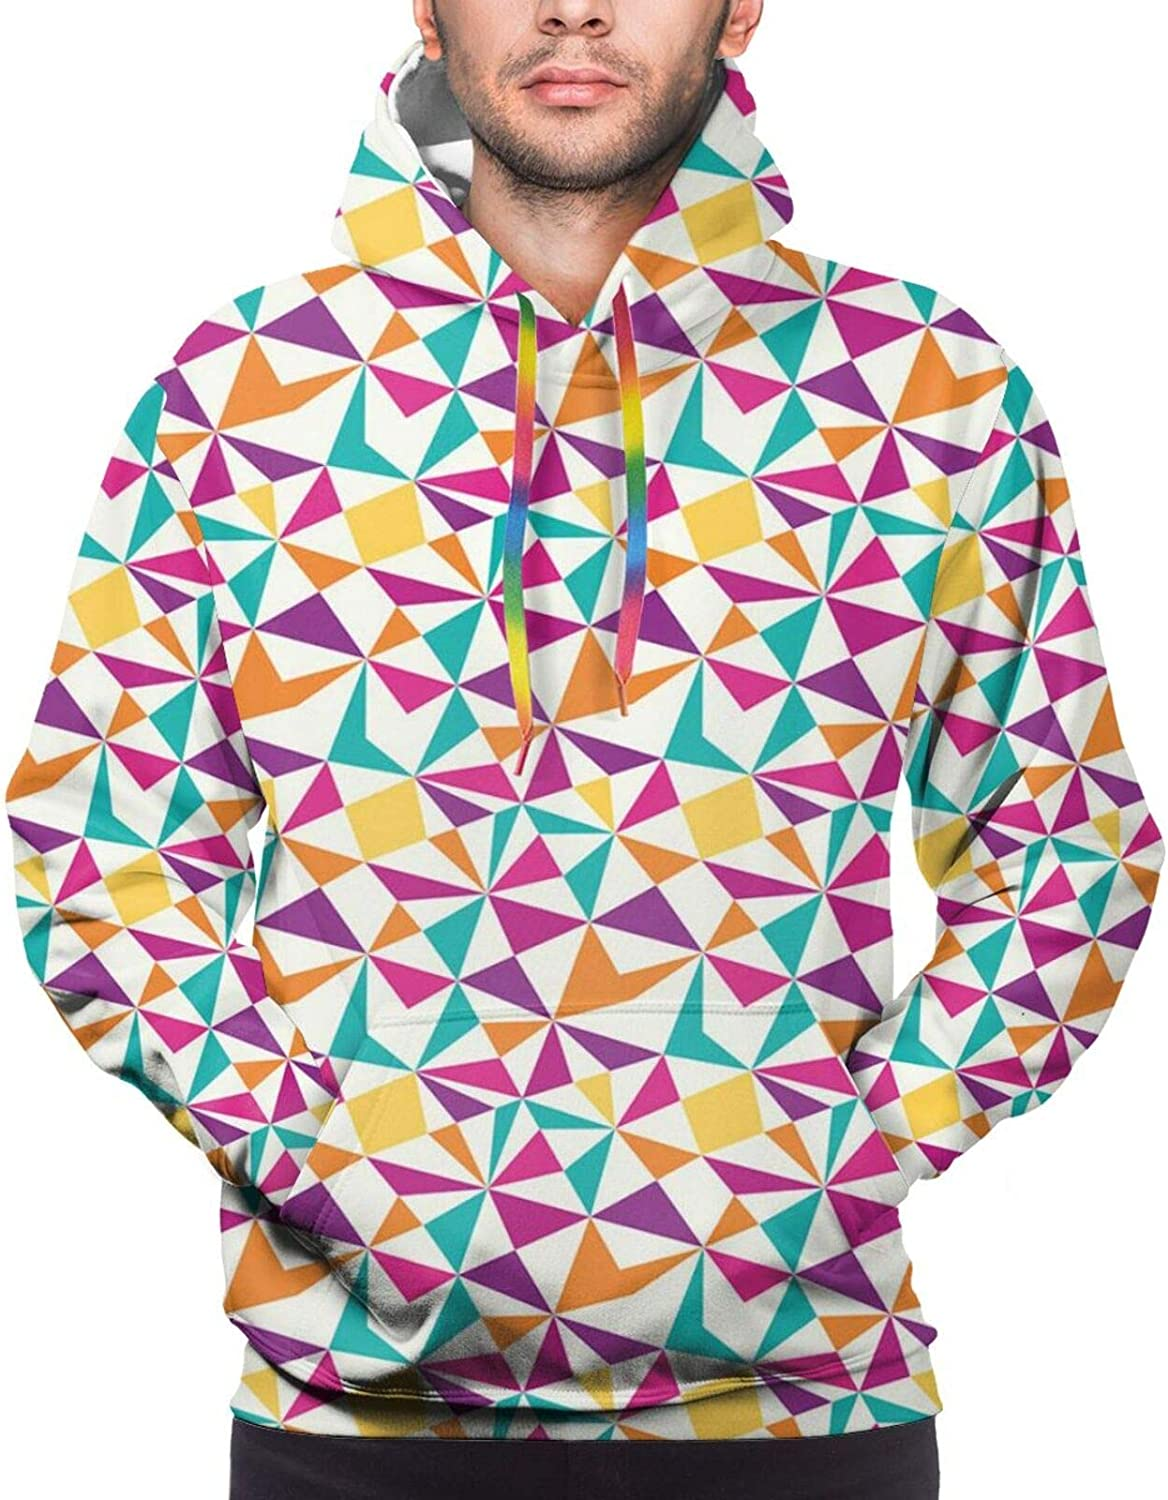 TENJONE Men's Hoodies Sweatshirts,Geometric Themed Pattern with Rounded Triangles and Squares Artsy